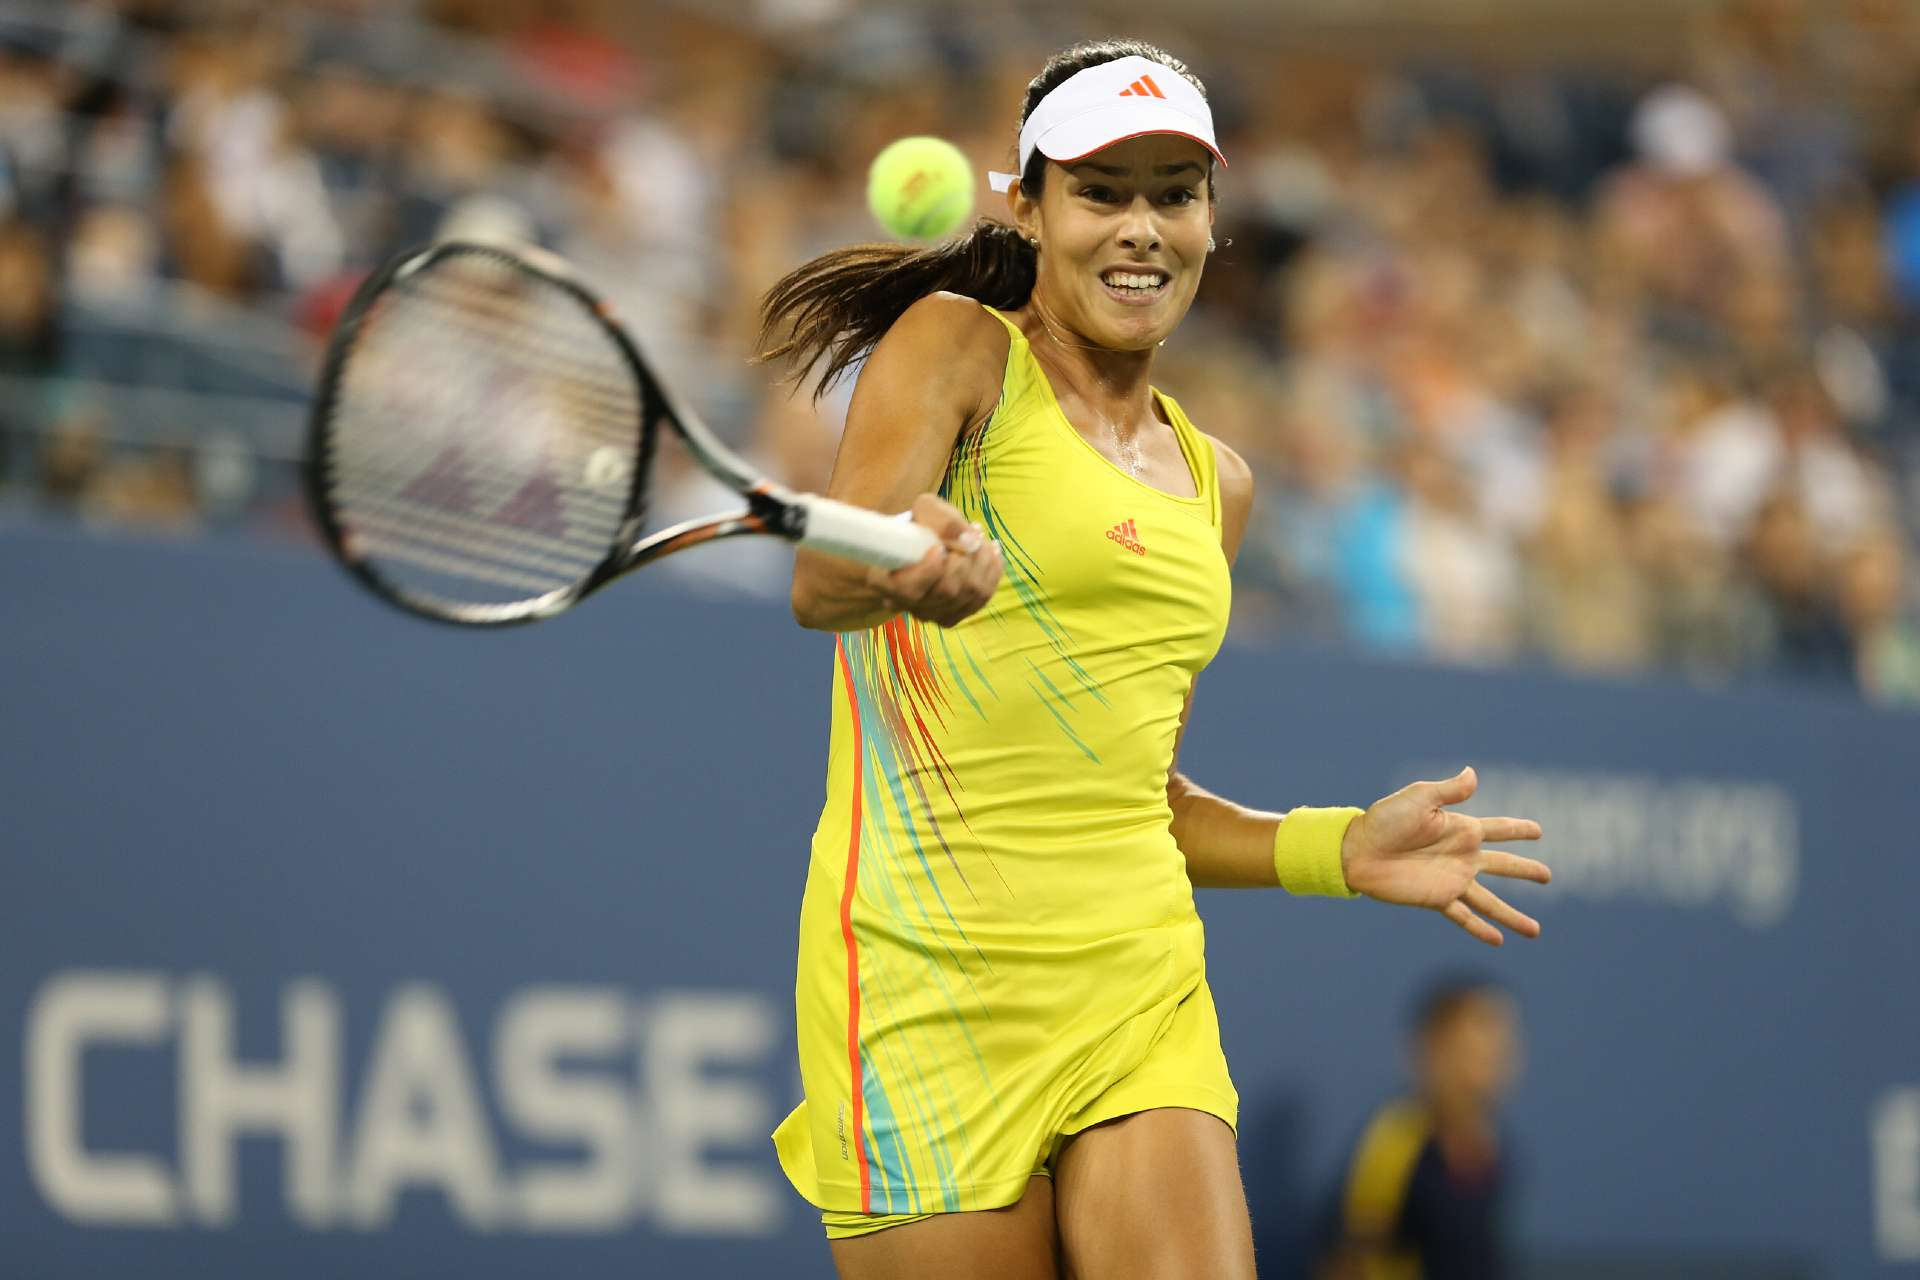 Ivanovic actually pulled off this neon-yellow look better than others did at the 2012 U.S. Open.